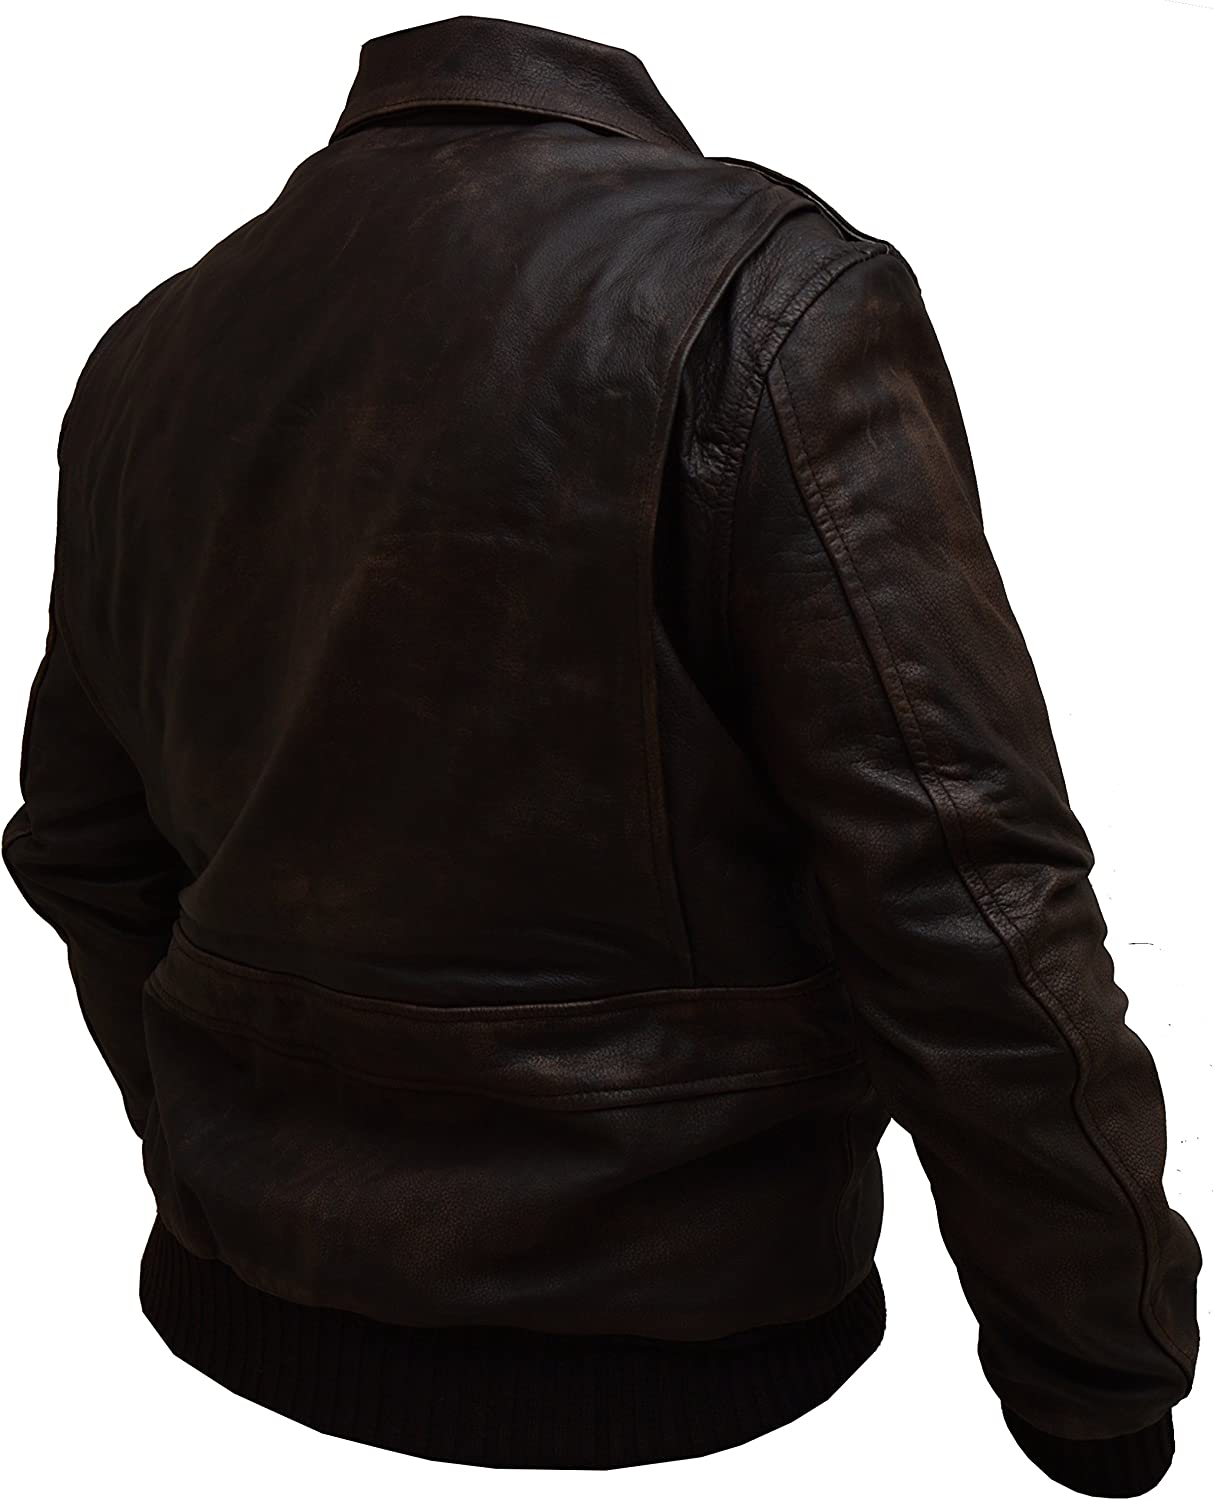 Mens Aviator A-2 Air Force Flight Navy Distressed Real Leather Bomber Jacket